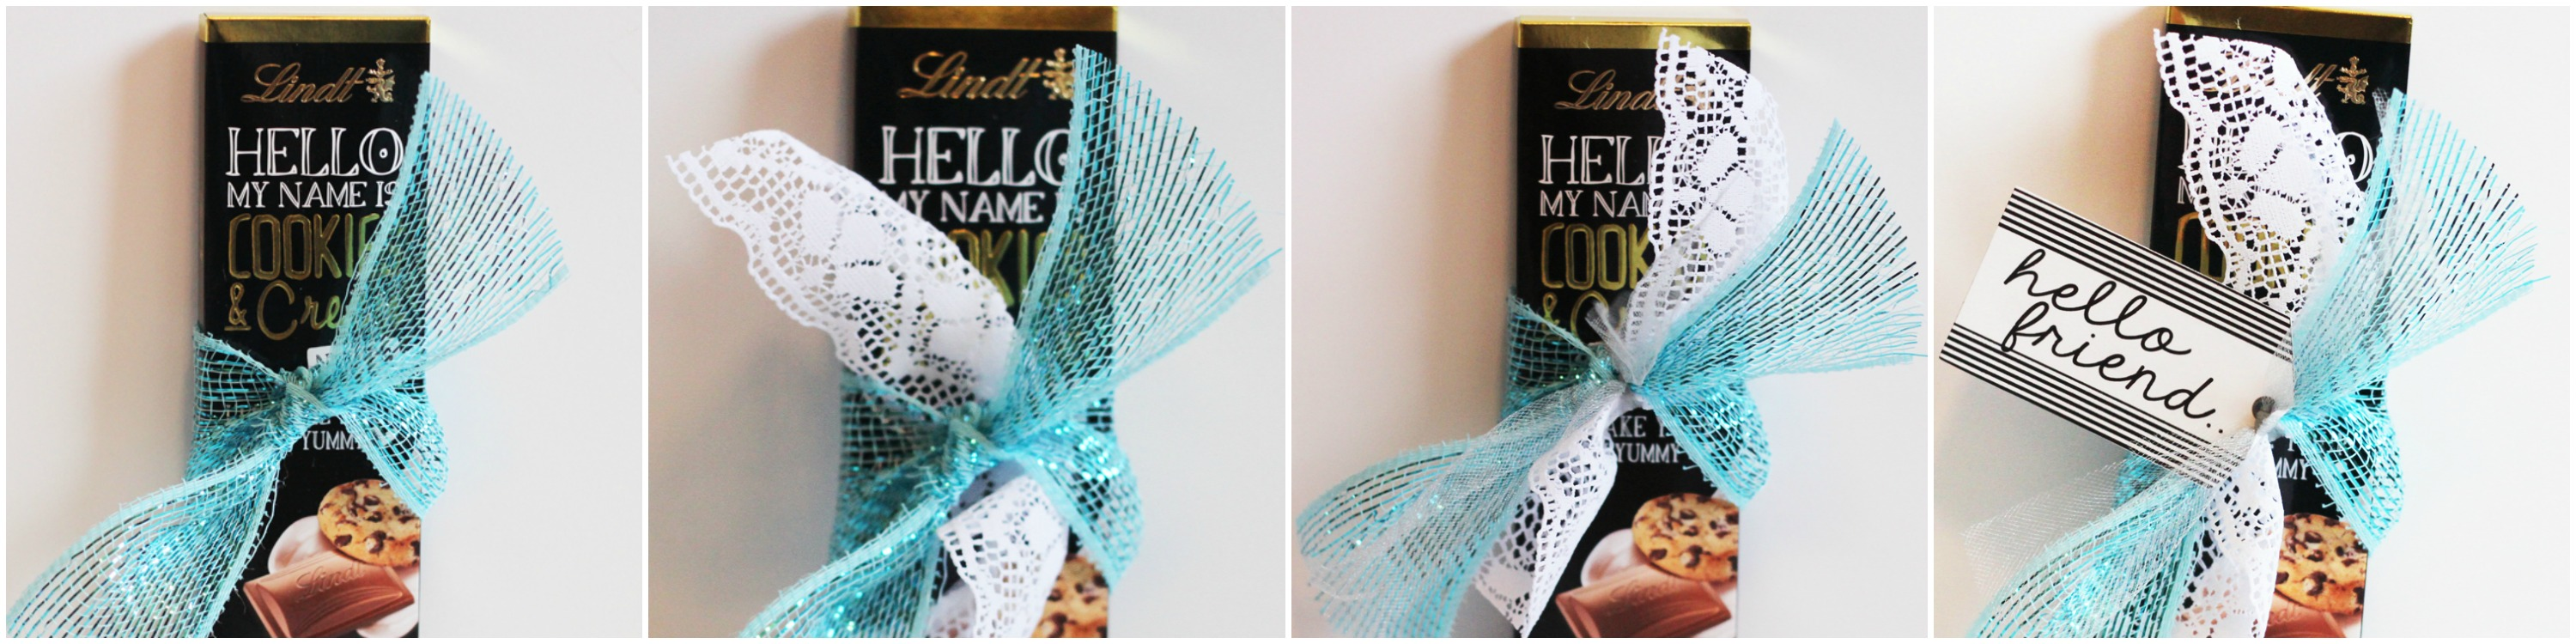 Lindt Hello Collage